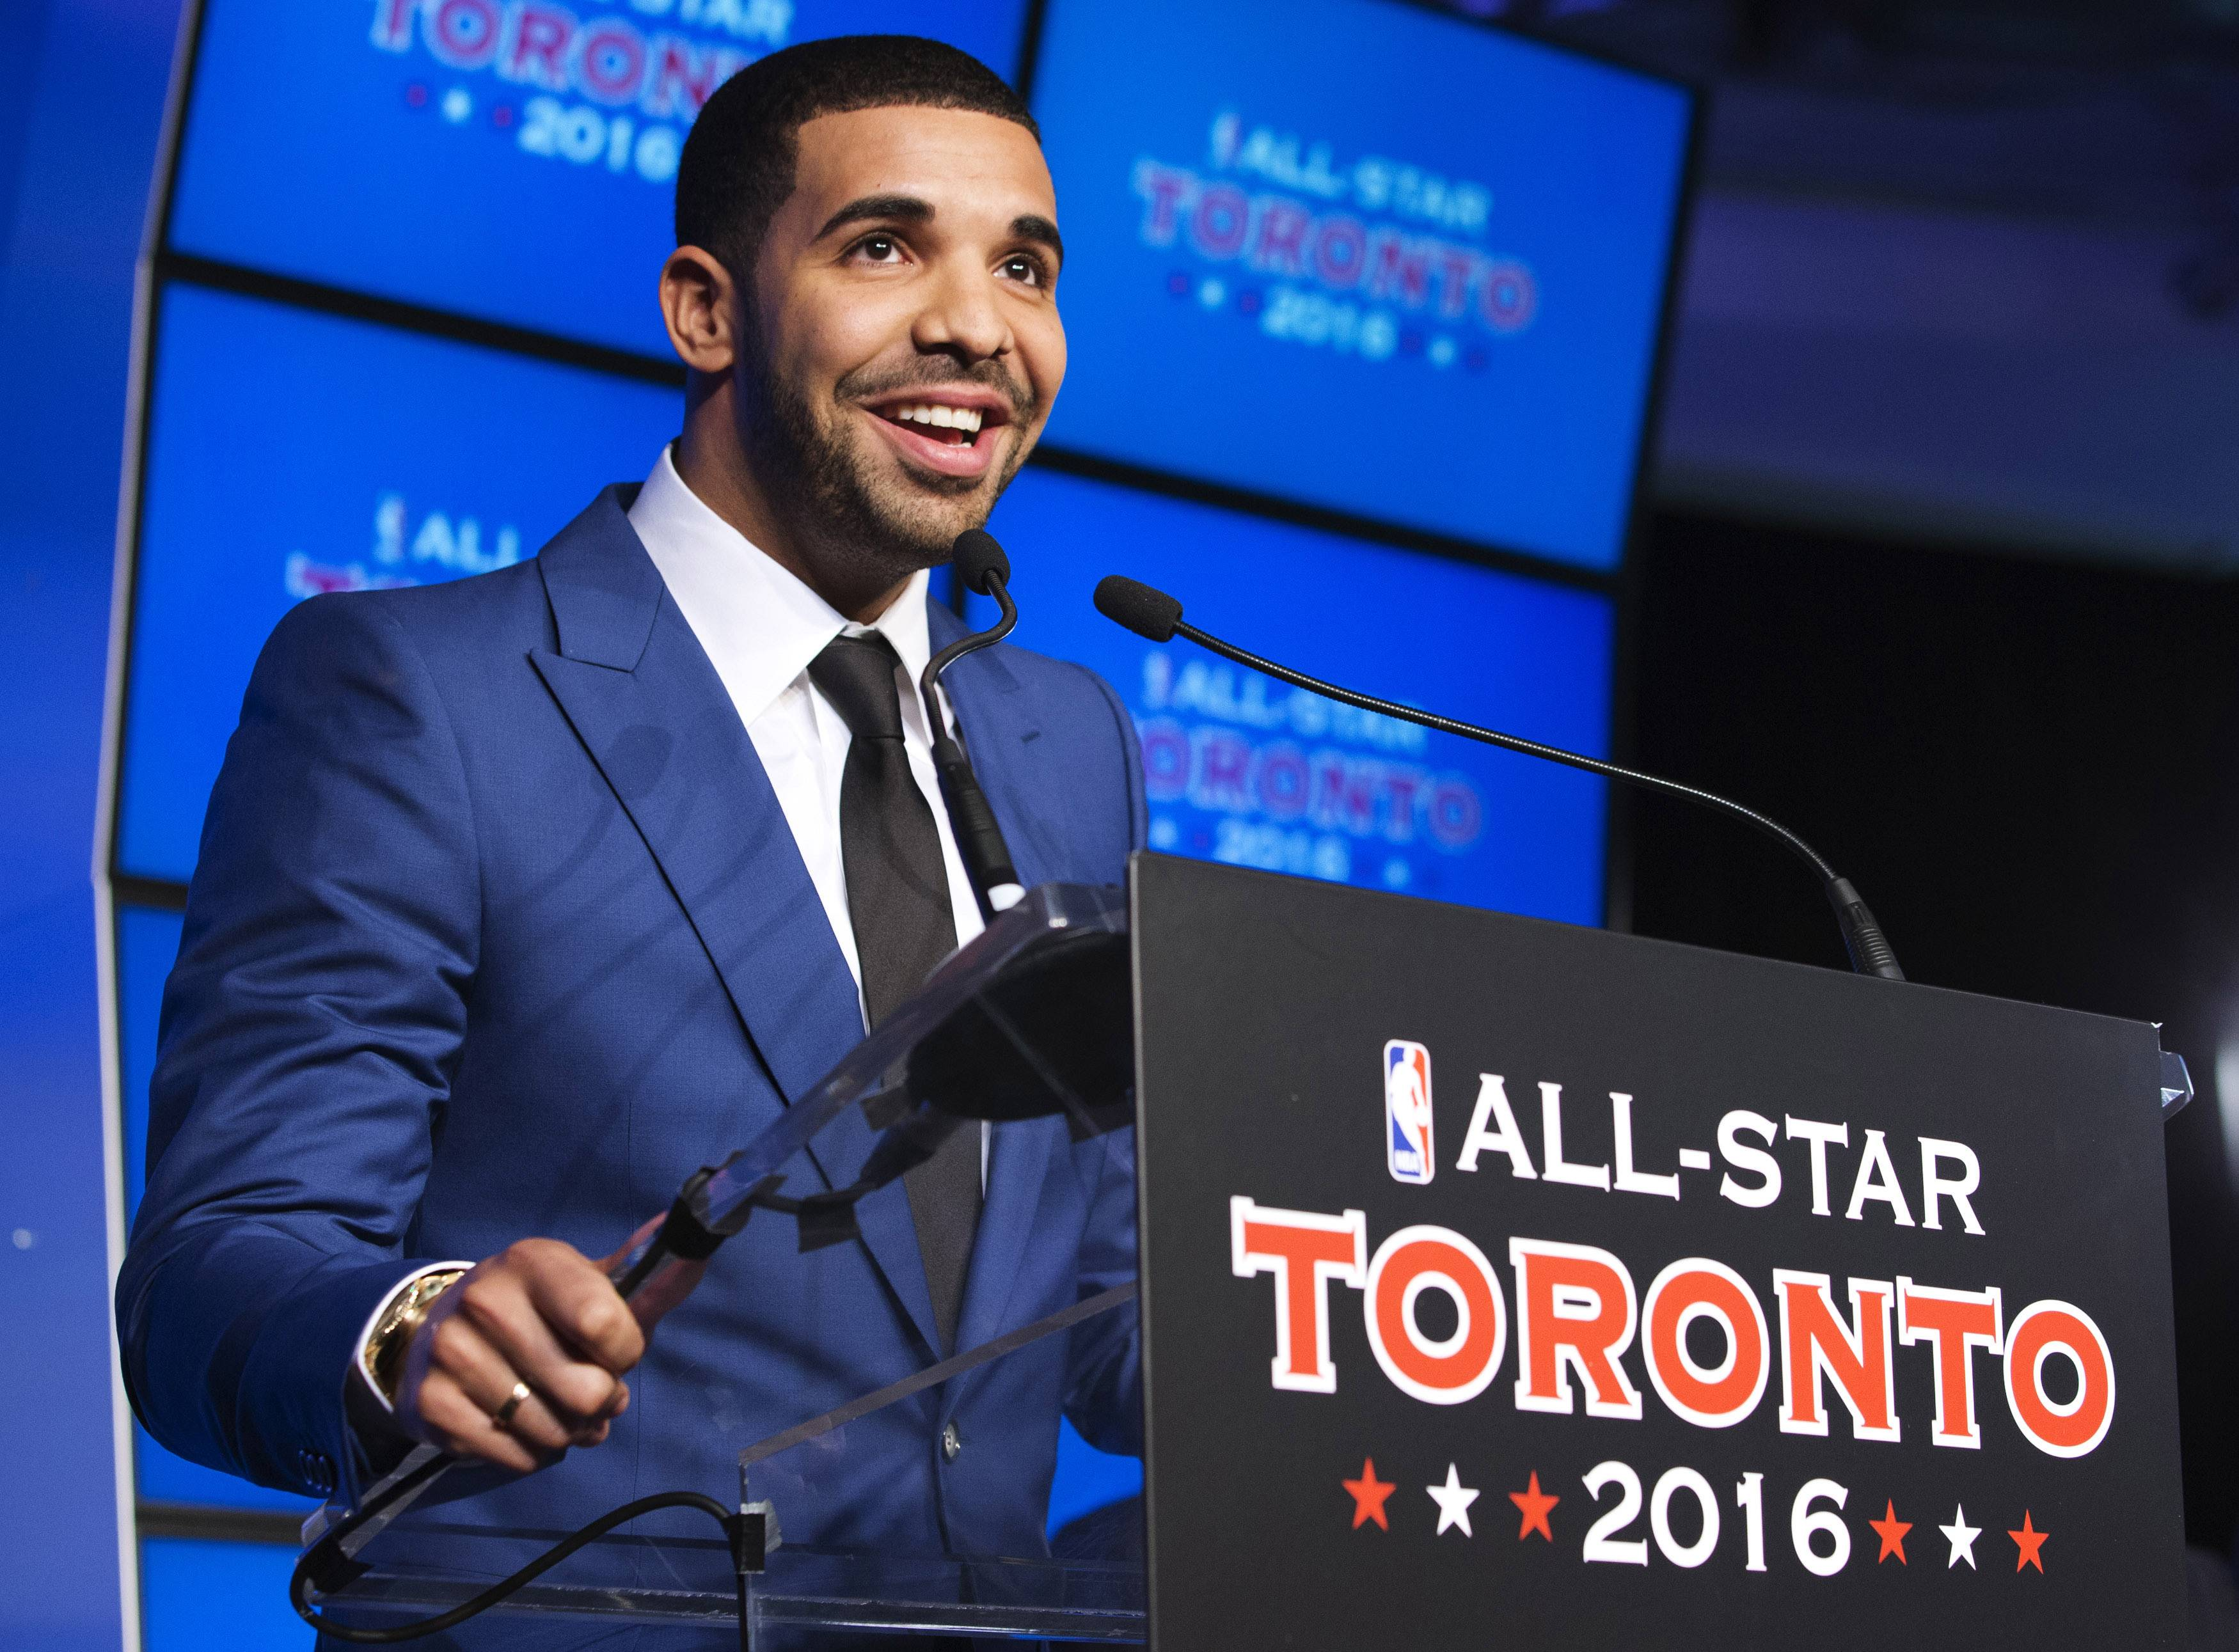 """Drake - Drake is not only a member of the Toronto Raptors' fan club, he's also the team's newest global ambassador. """"Basketball in Canada is bigger now than ever before,"""" he promises.(Photo: REUTERS/Mark Blinch/LANDOV)"""